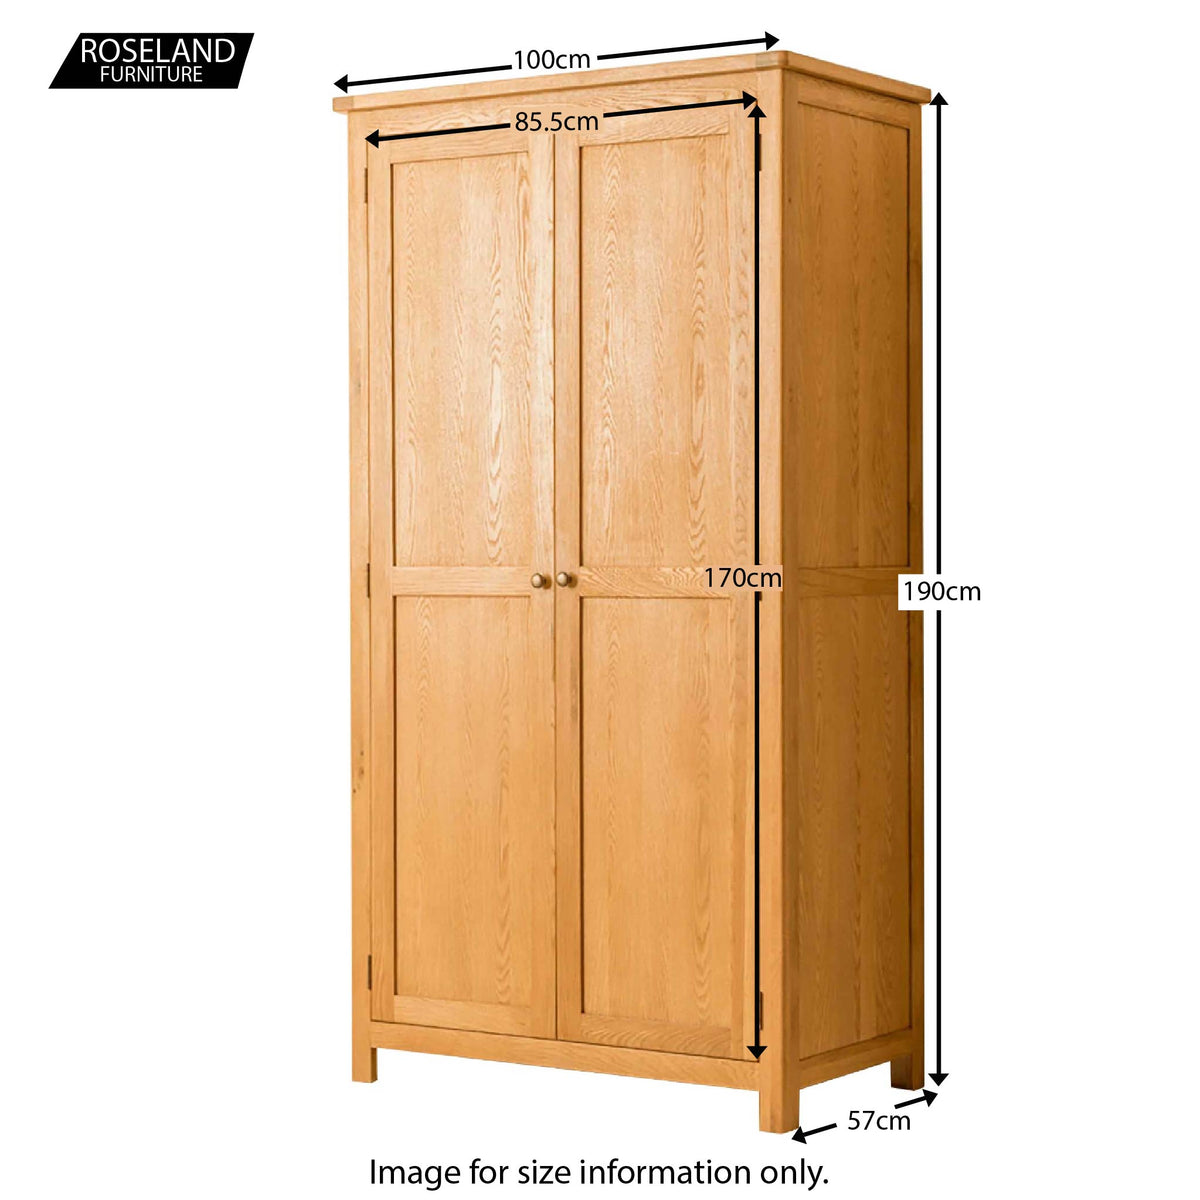 Roseland Oak Double Wardrobe - Size Guide